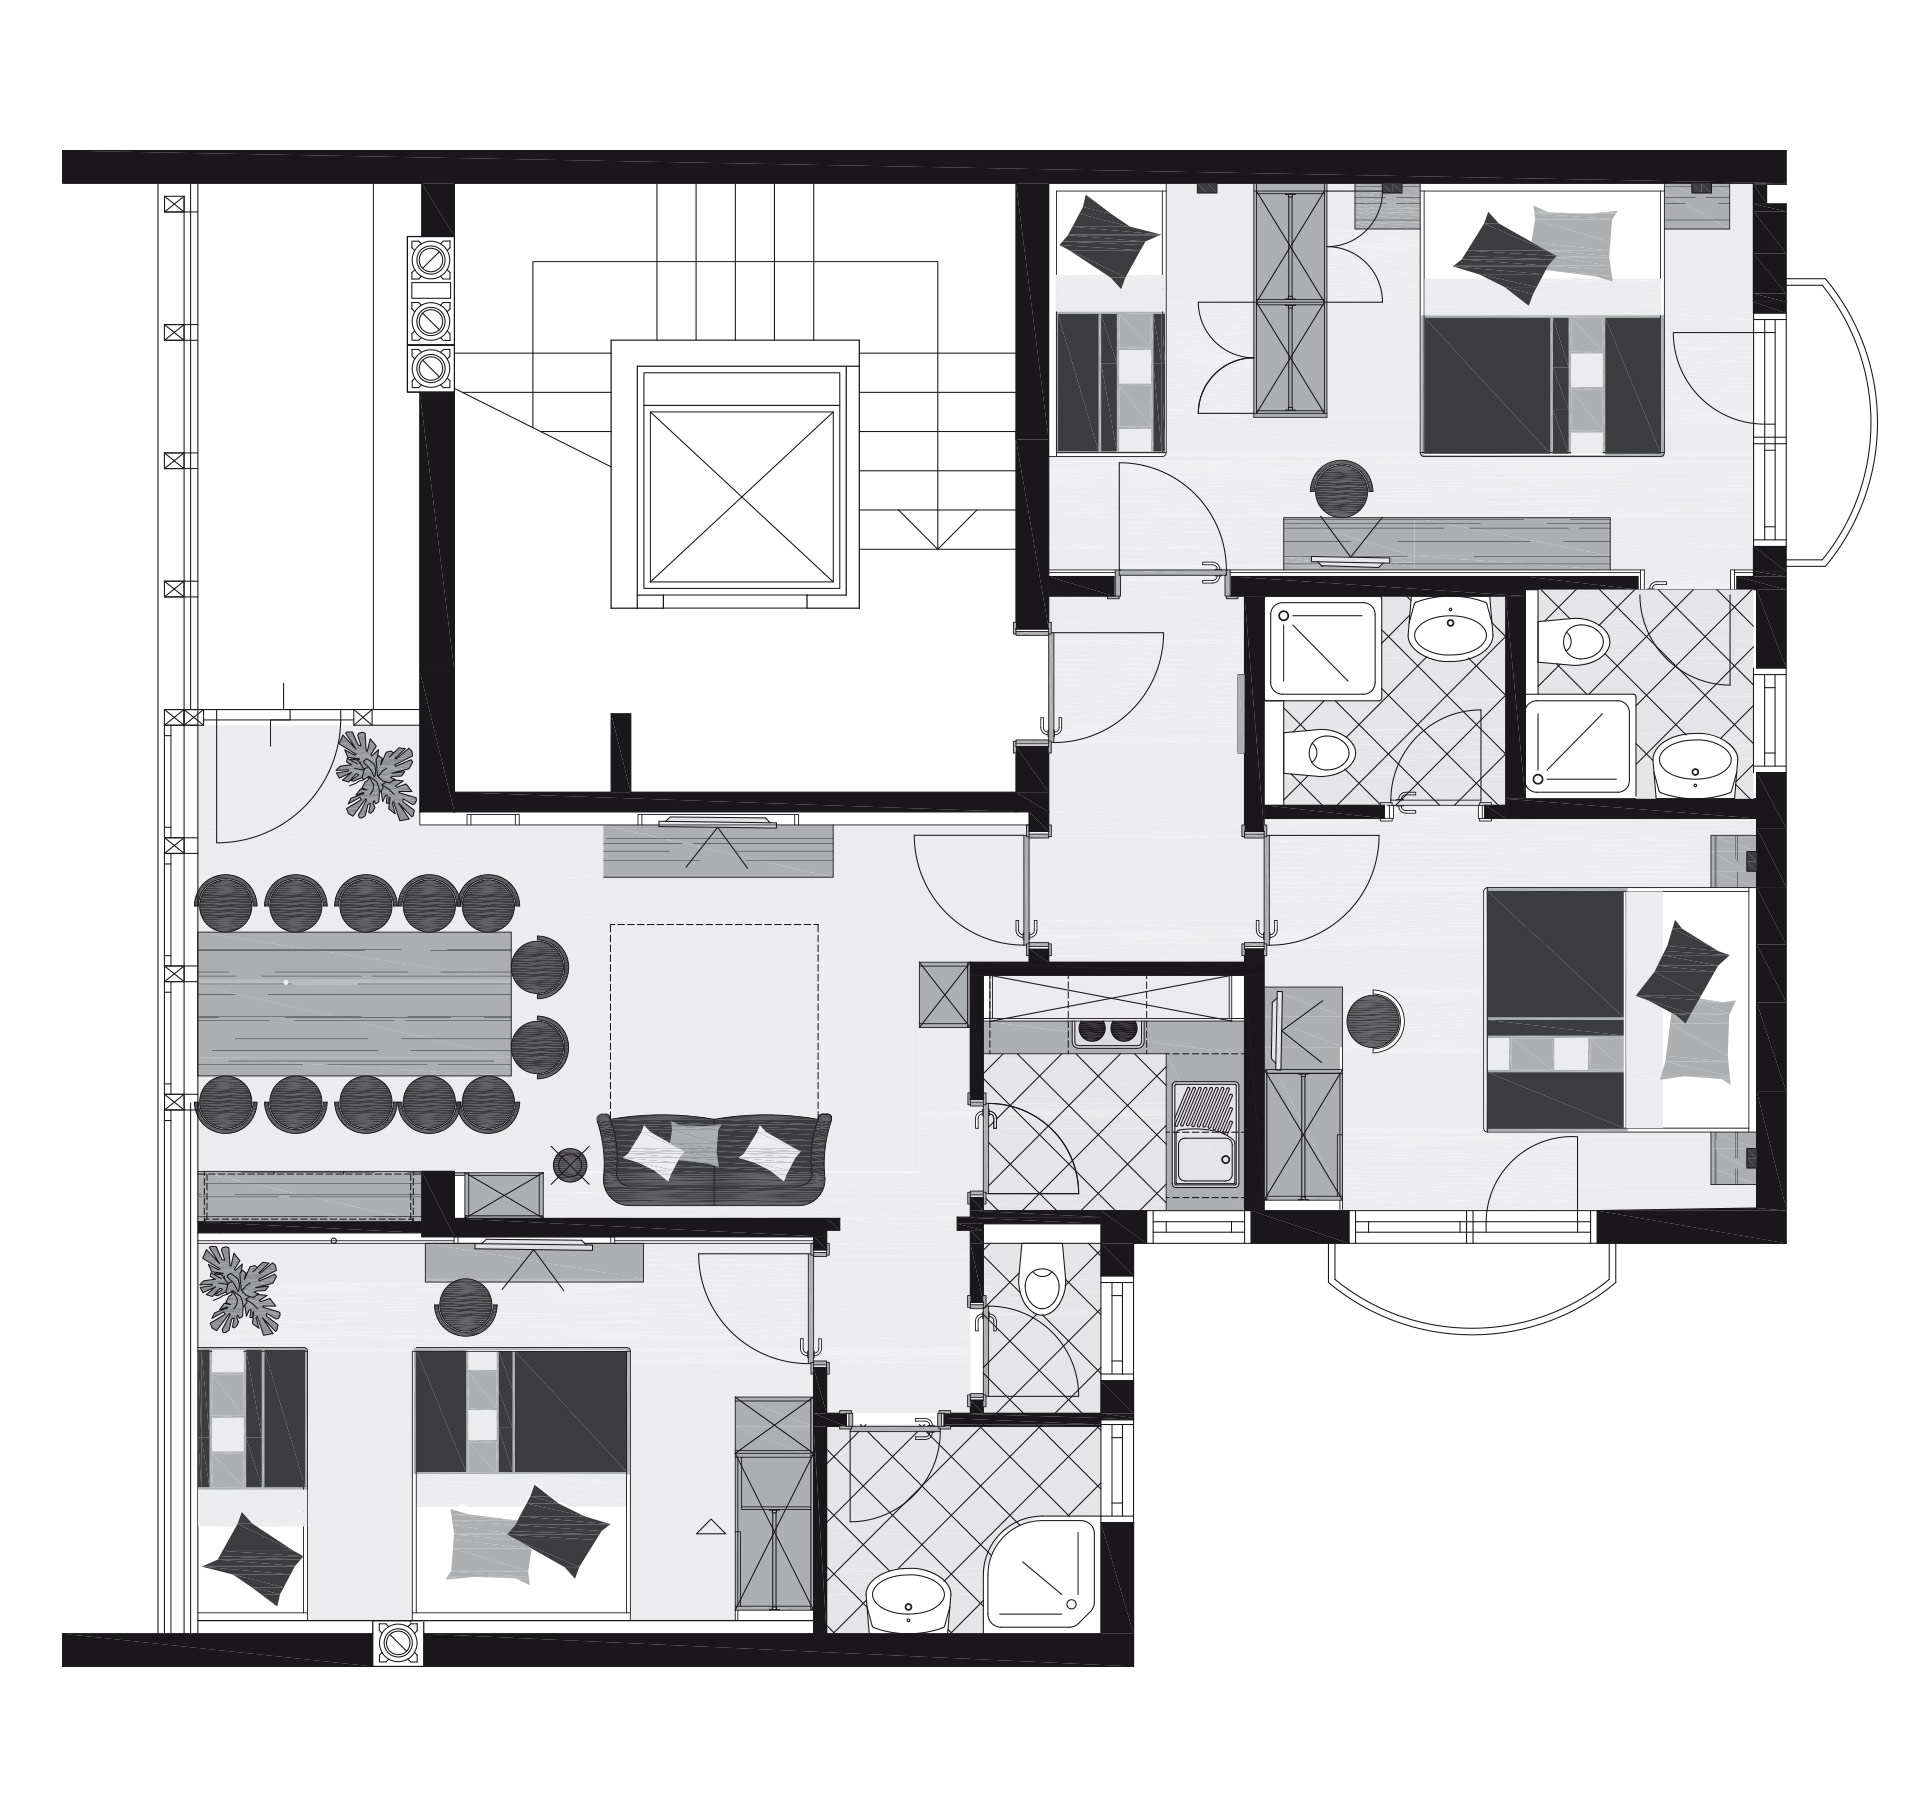 Penthouse apartment 8 10 people about 80m astellina apartments in ischgl - Lay outs penthouse ...